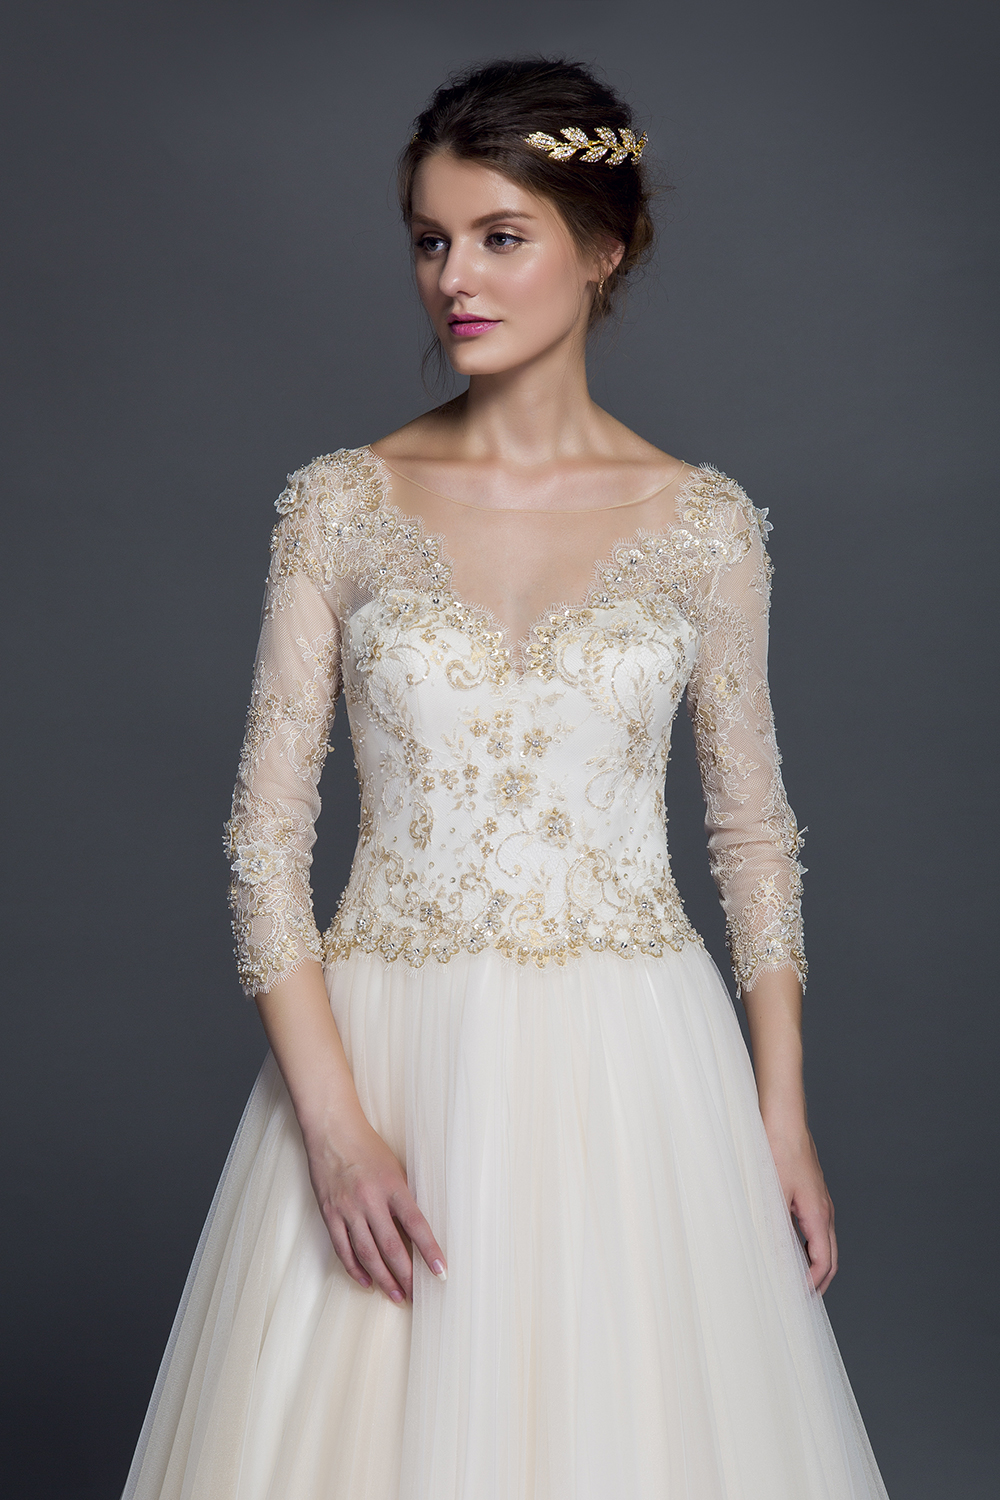 Stunning Champagne Lace Appliqued Ball Gown Winter Wedding